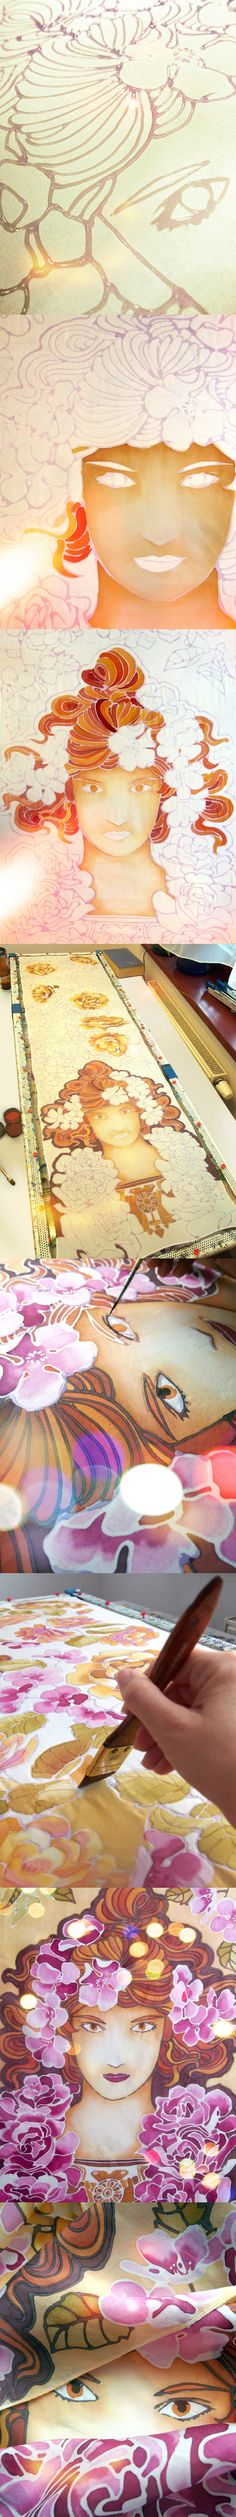 Step by step hand painted silk scarf 'Mucha Rose' by Luiza Malinowska Minkulul…